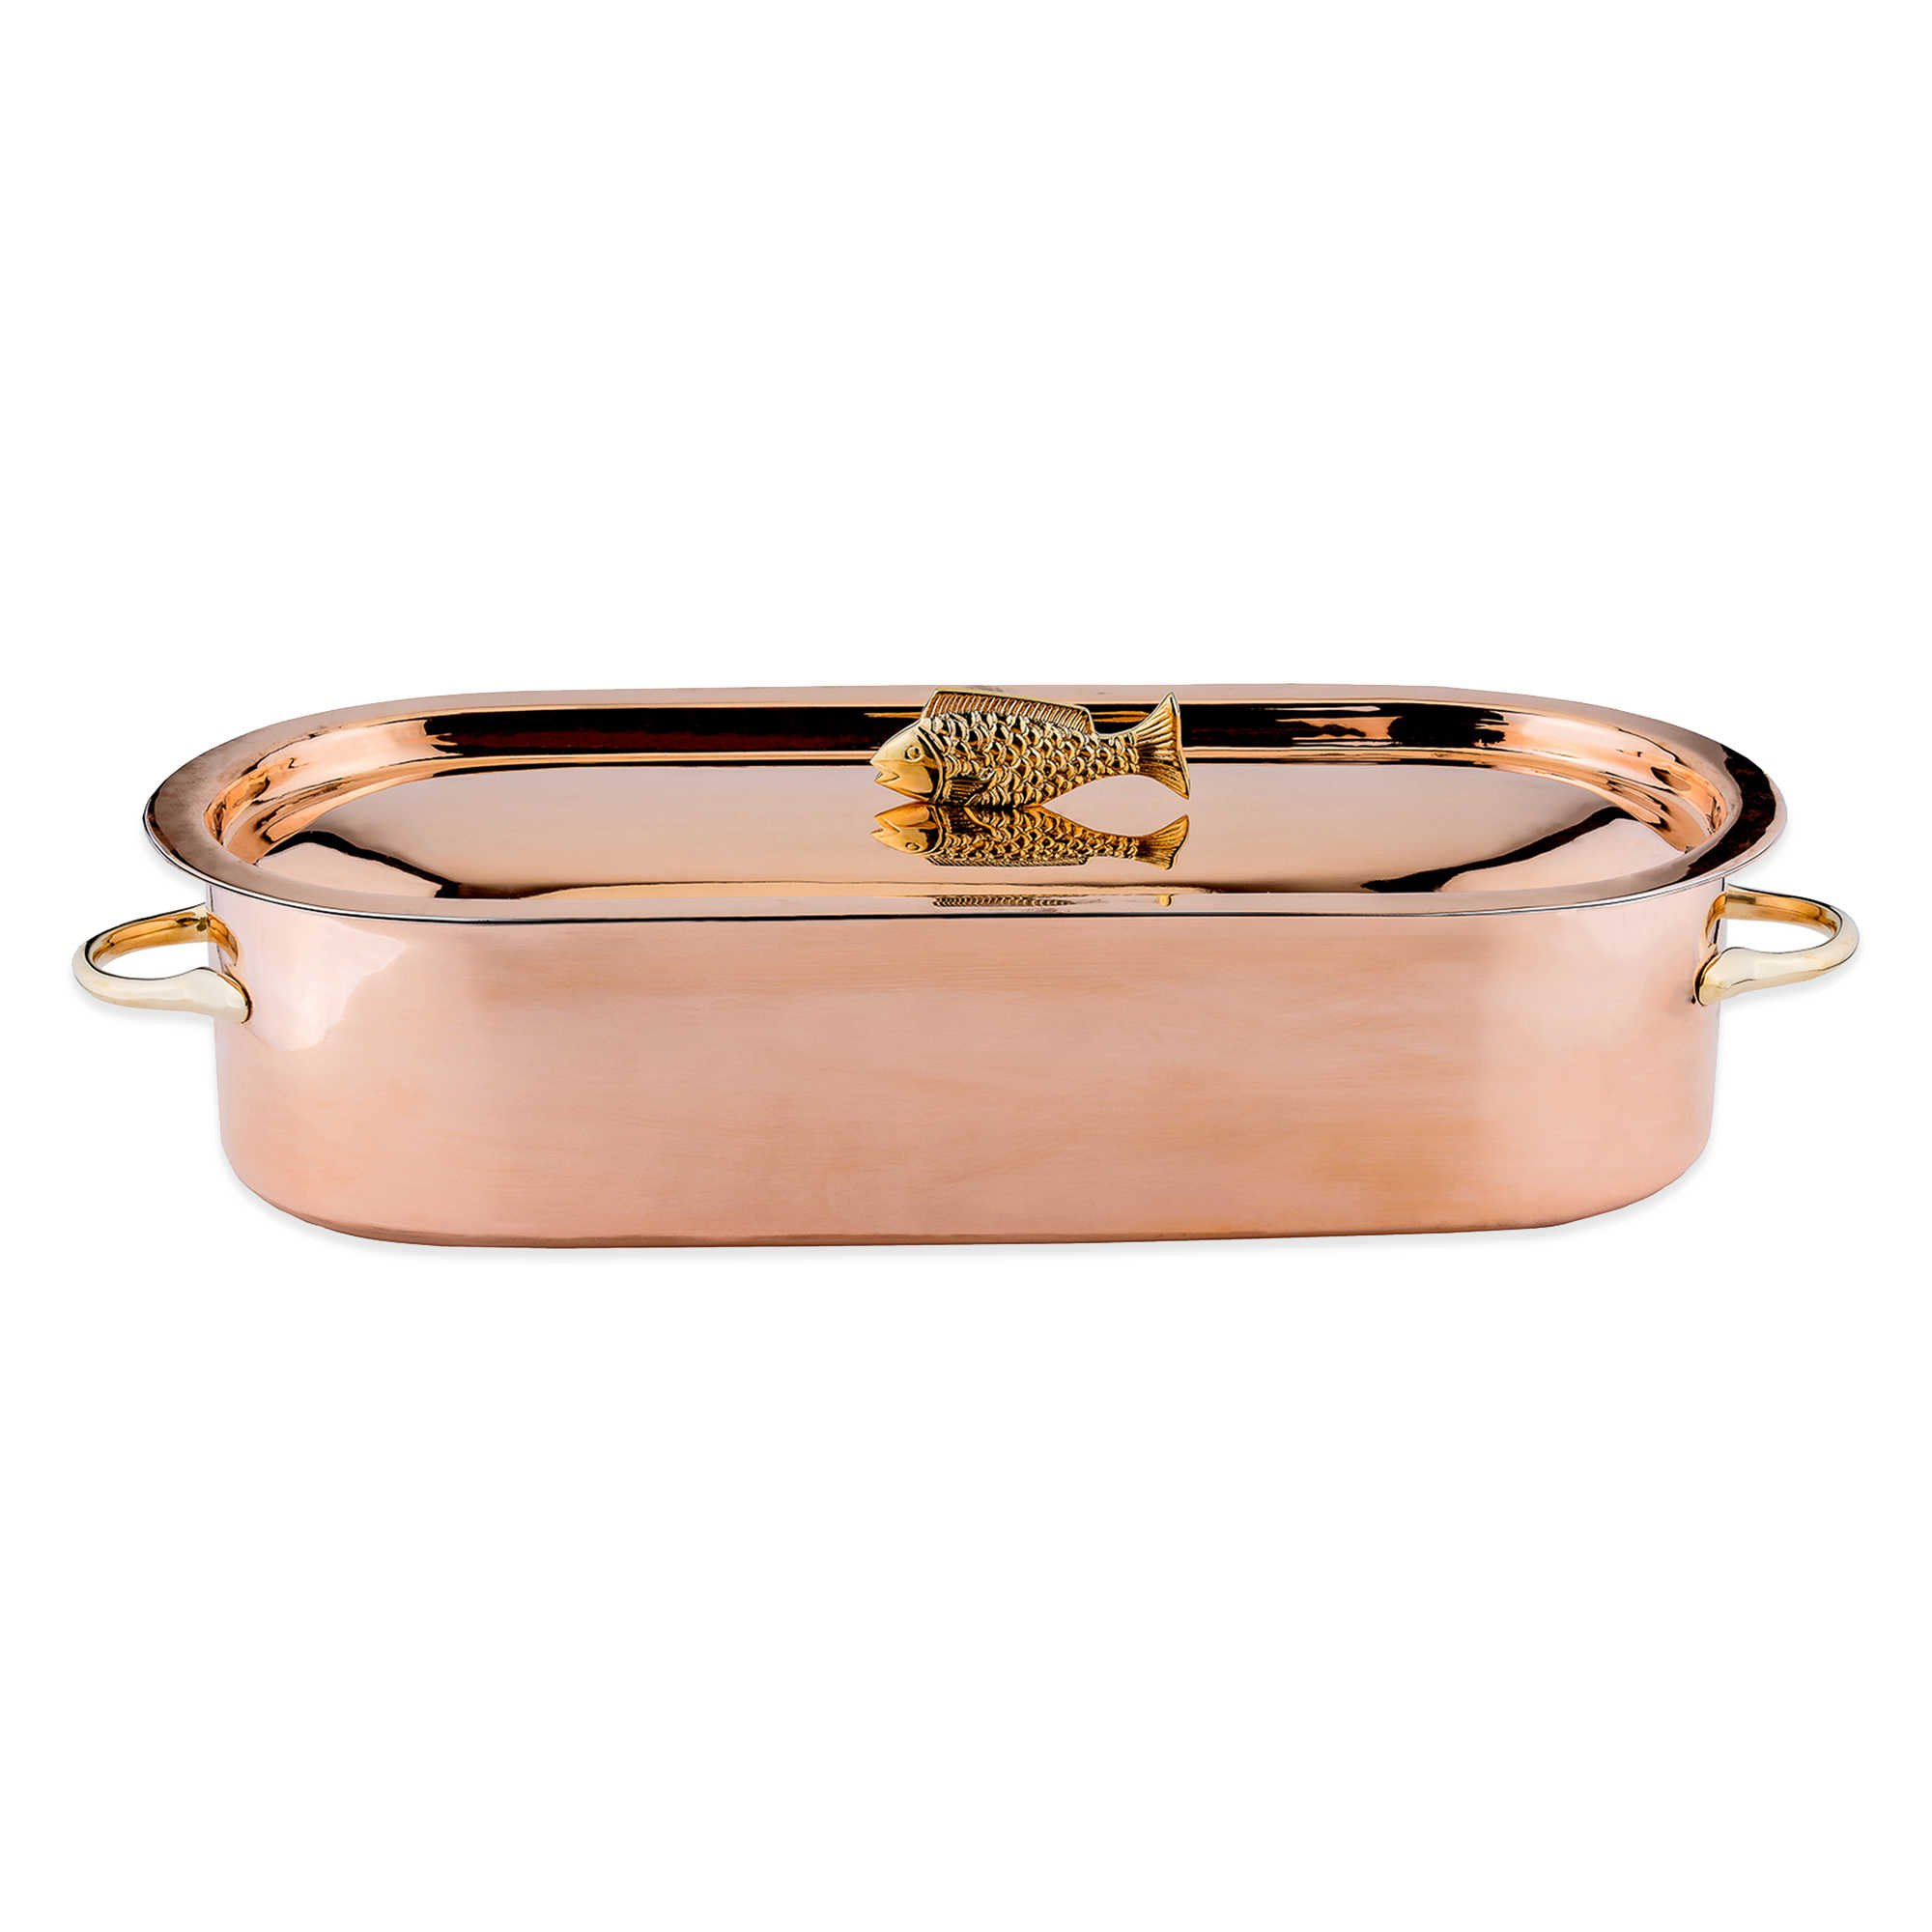 Solid Copper Construction With Stainless Steel Rack Fish Poacher